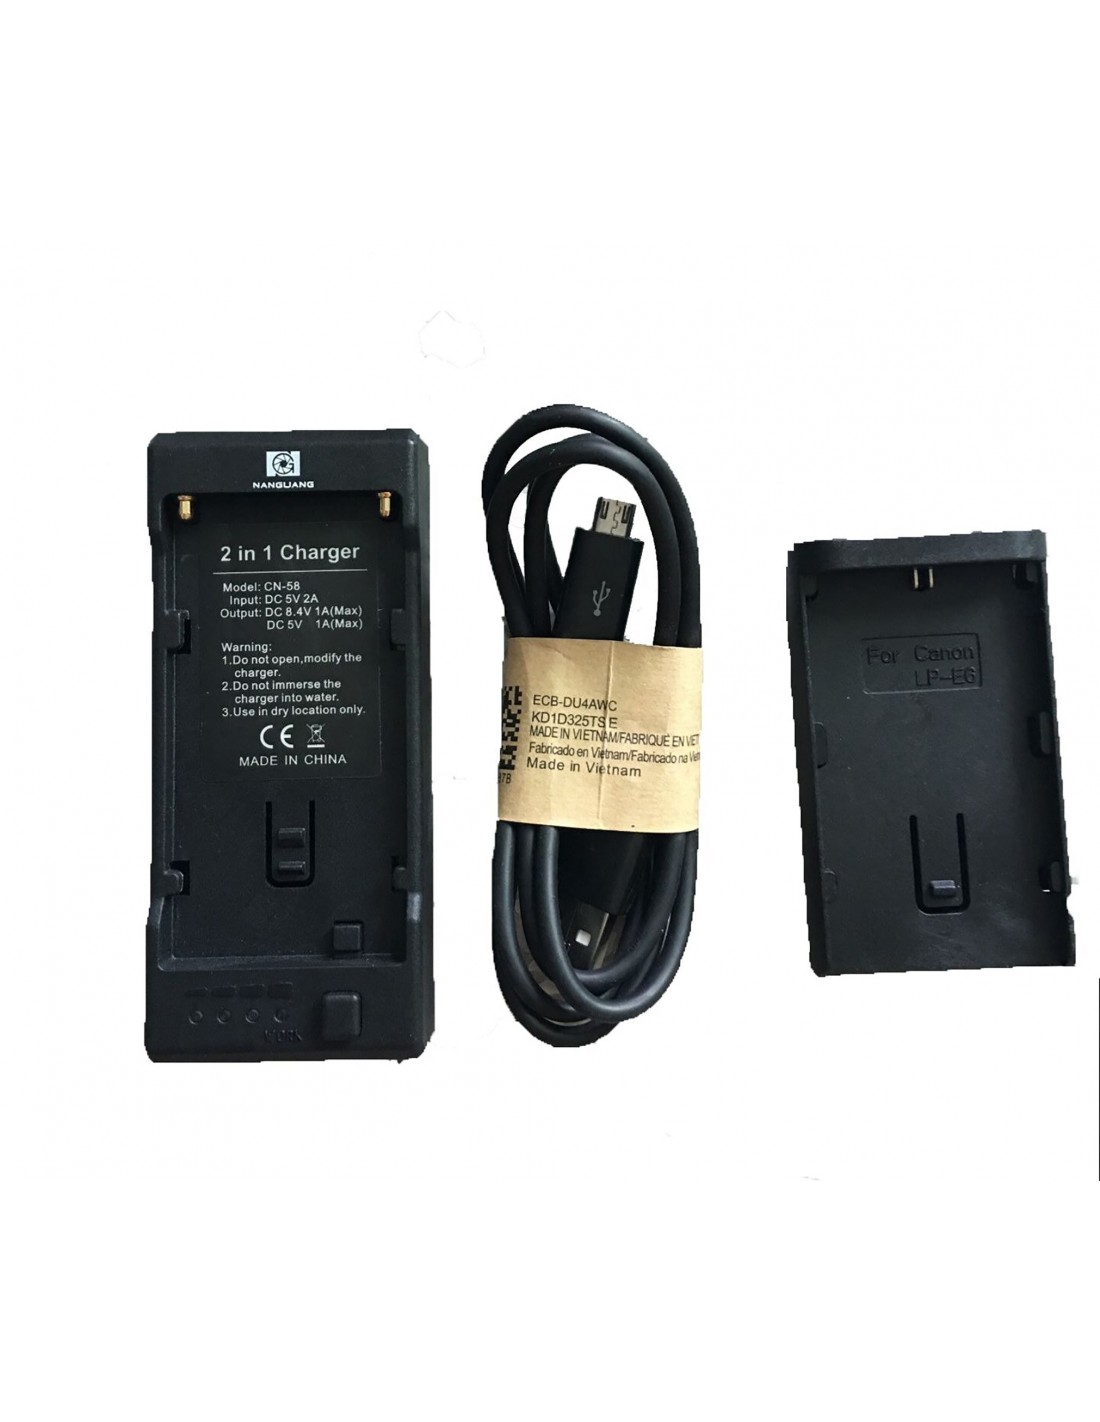 NanGuang CN-58 2-in-1 Battery Charger for NP-F970 / 750 / 550 / Nikon EN-EL15